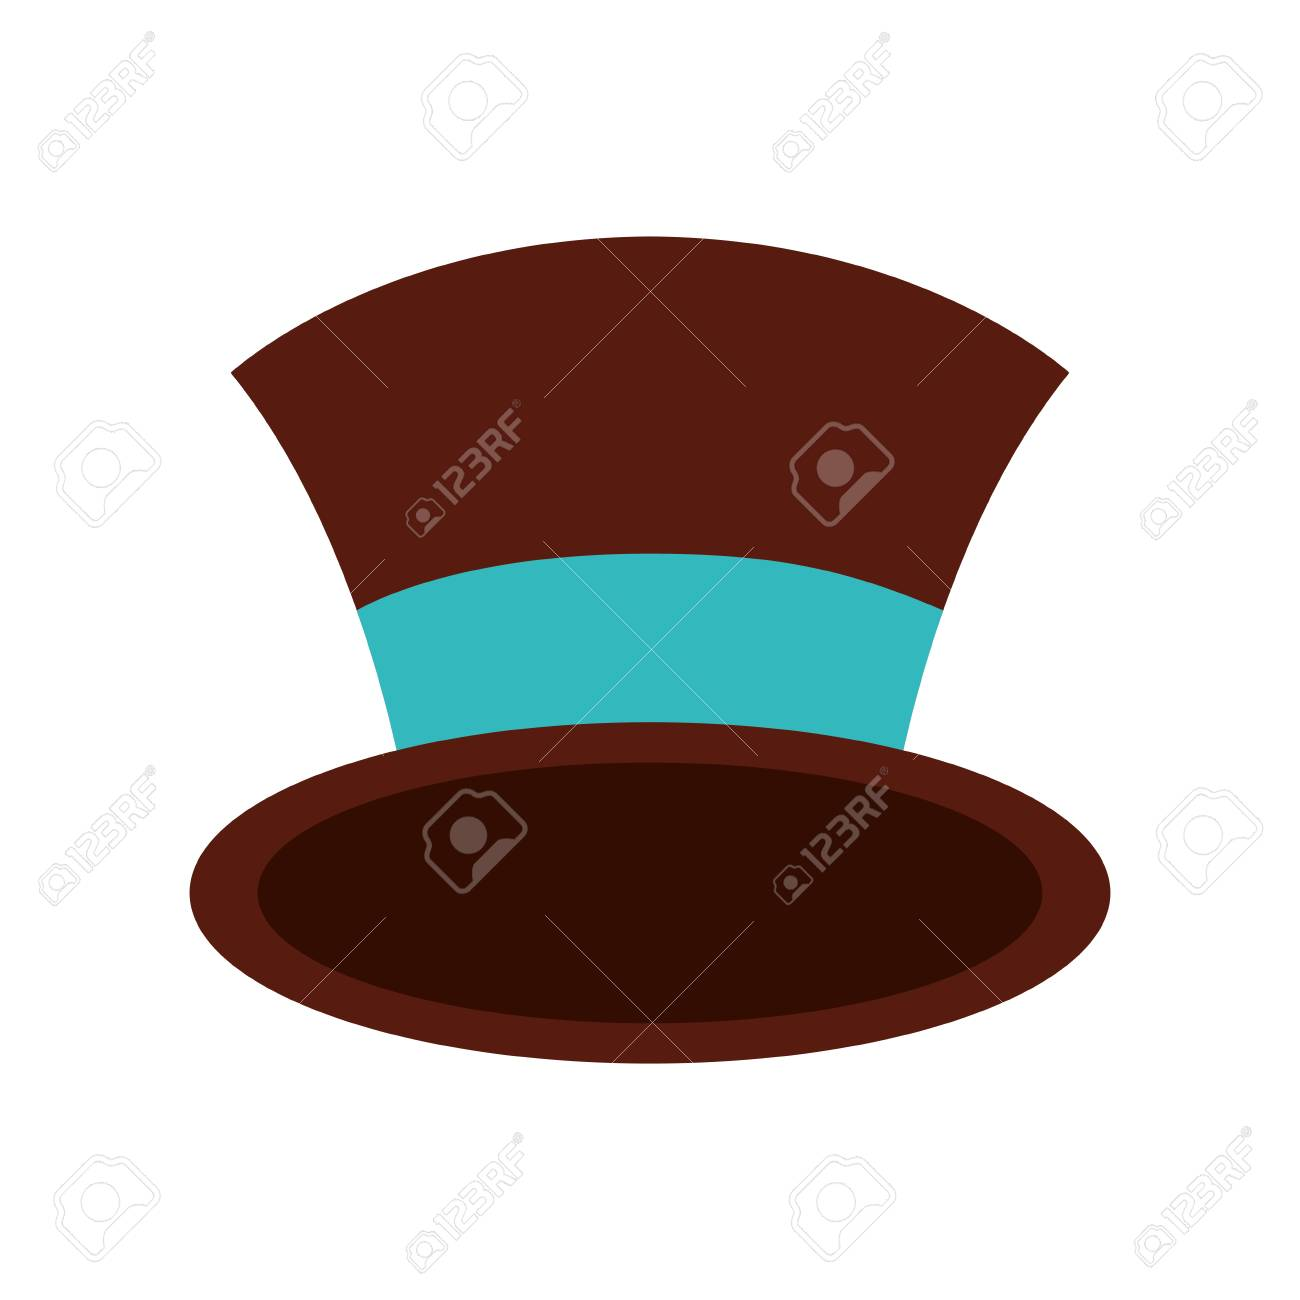 Christmas Top Hat.Christmas Top Hat Of Snowman Accessory Vector Illustration